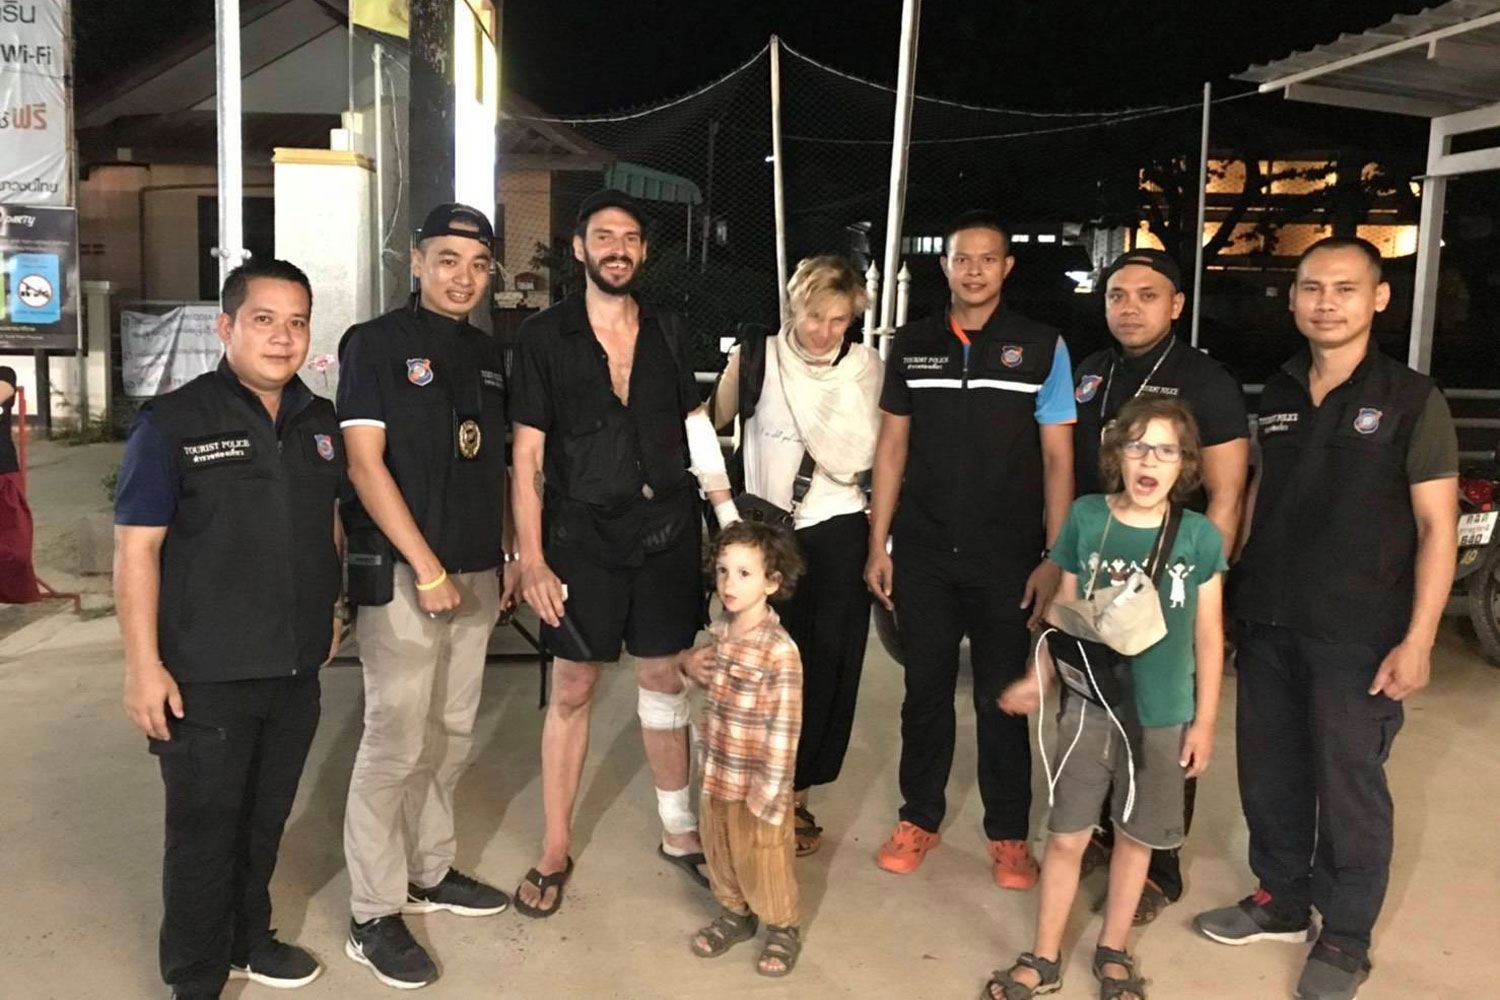 The Polish family poses with local tourist police after being found in a hilly forest on Koh Phangan in Surat Thani province on Monday night. They had gone for a walk to take in the views on Monday and were unable to find their way back to their hotel. (Photo from the Tourist Police Division 3)